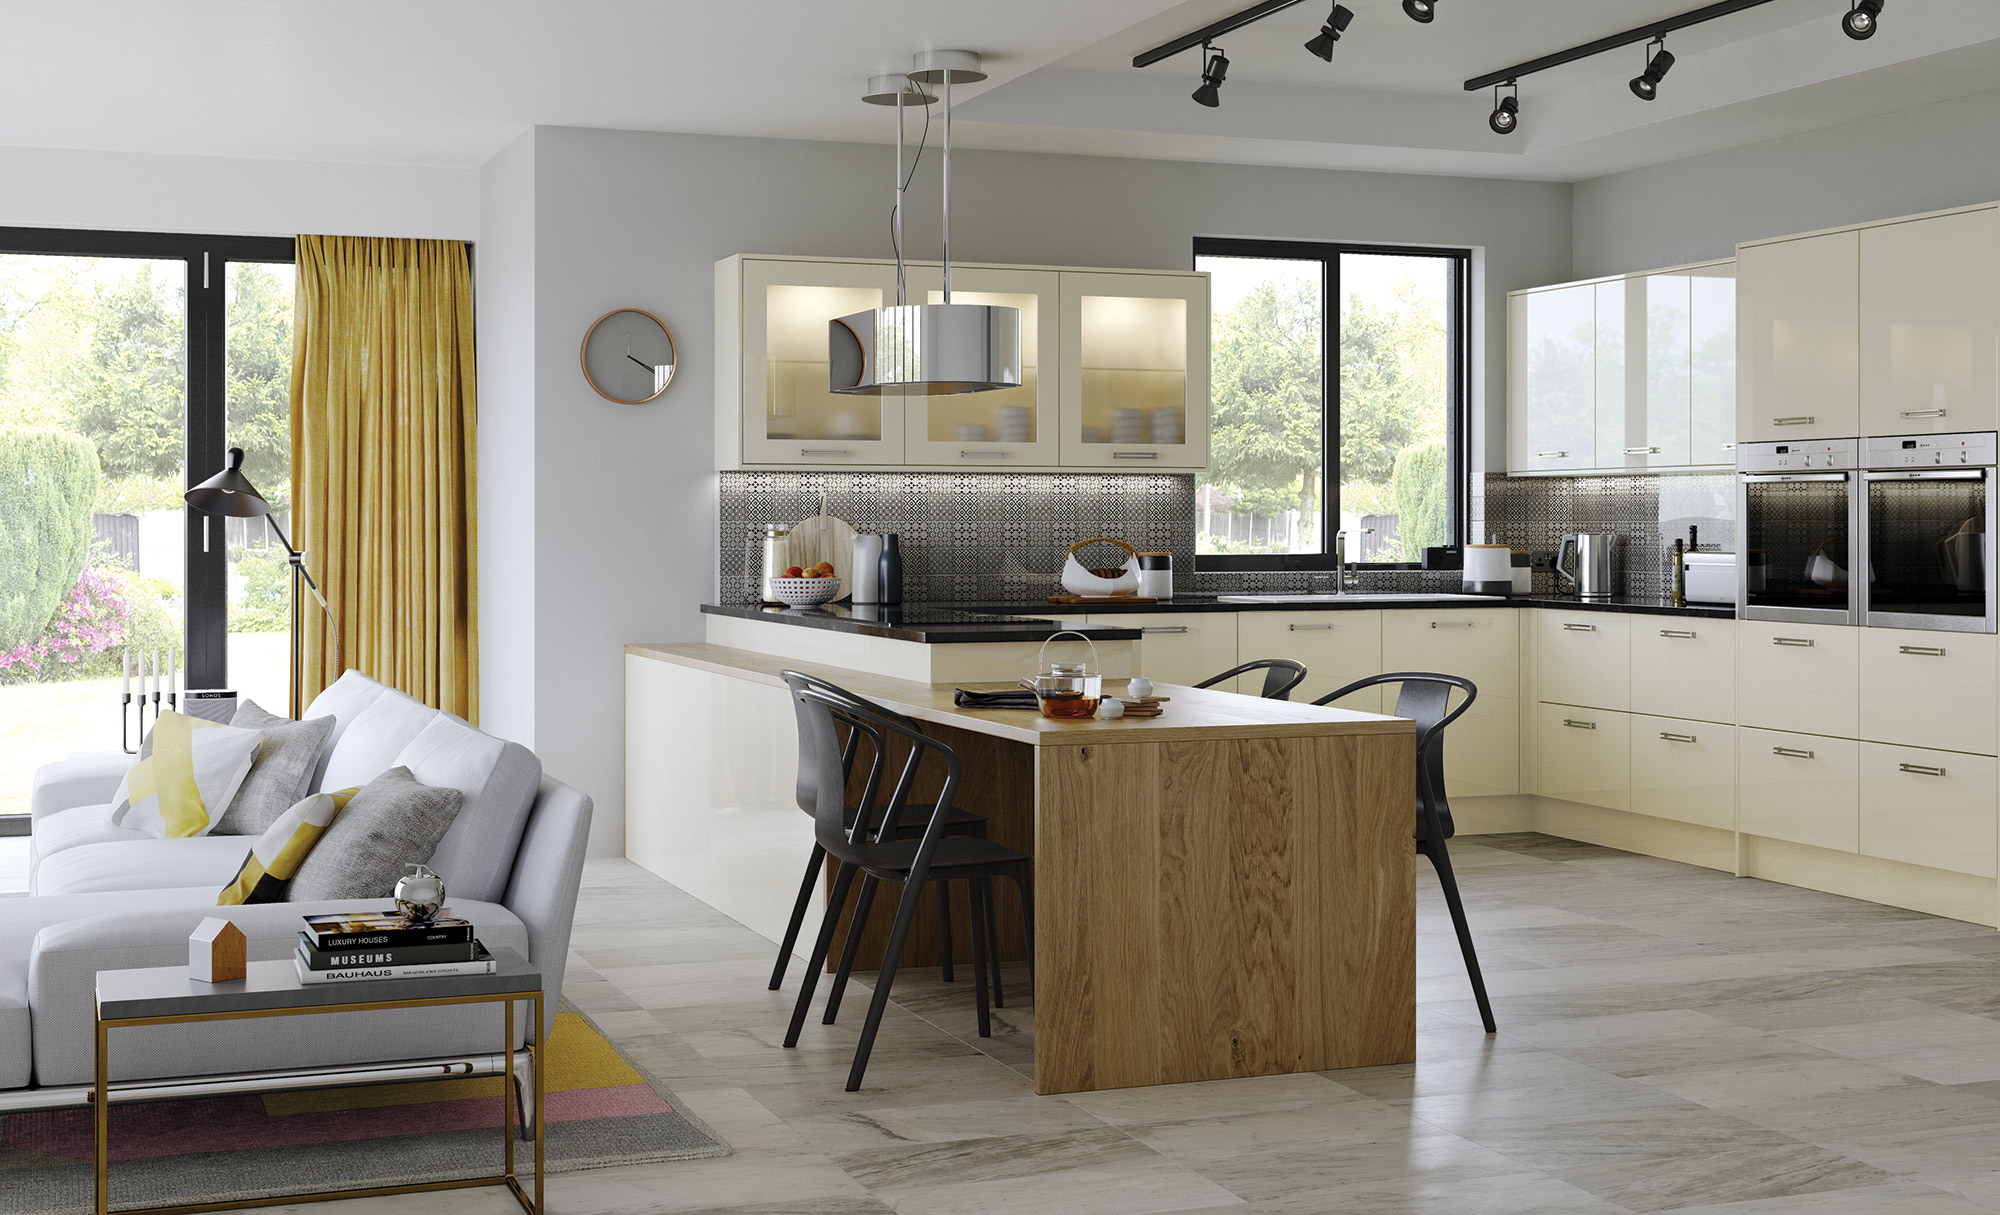 German Kitchens  Made To Measure  Kitchens Glasgow. The Living Room Tanzania. Southwest Style Living Rooms. Crate And Barrel Living Room Ideas. Loft Bed Living Room. Wainscoting In Living Room. Lamps For Living Room Ideas. Blue And Gray Living Room Combination. Living Room Reveal